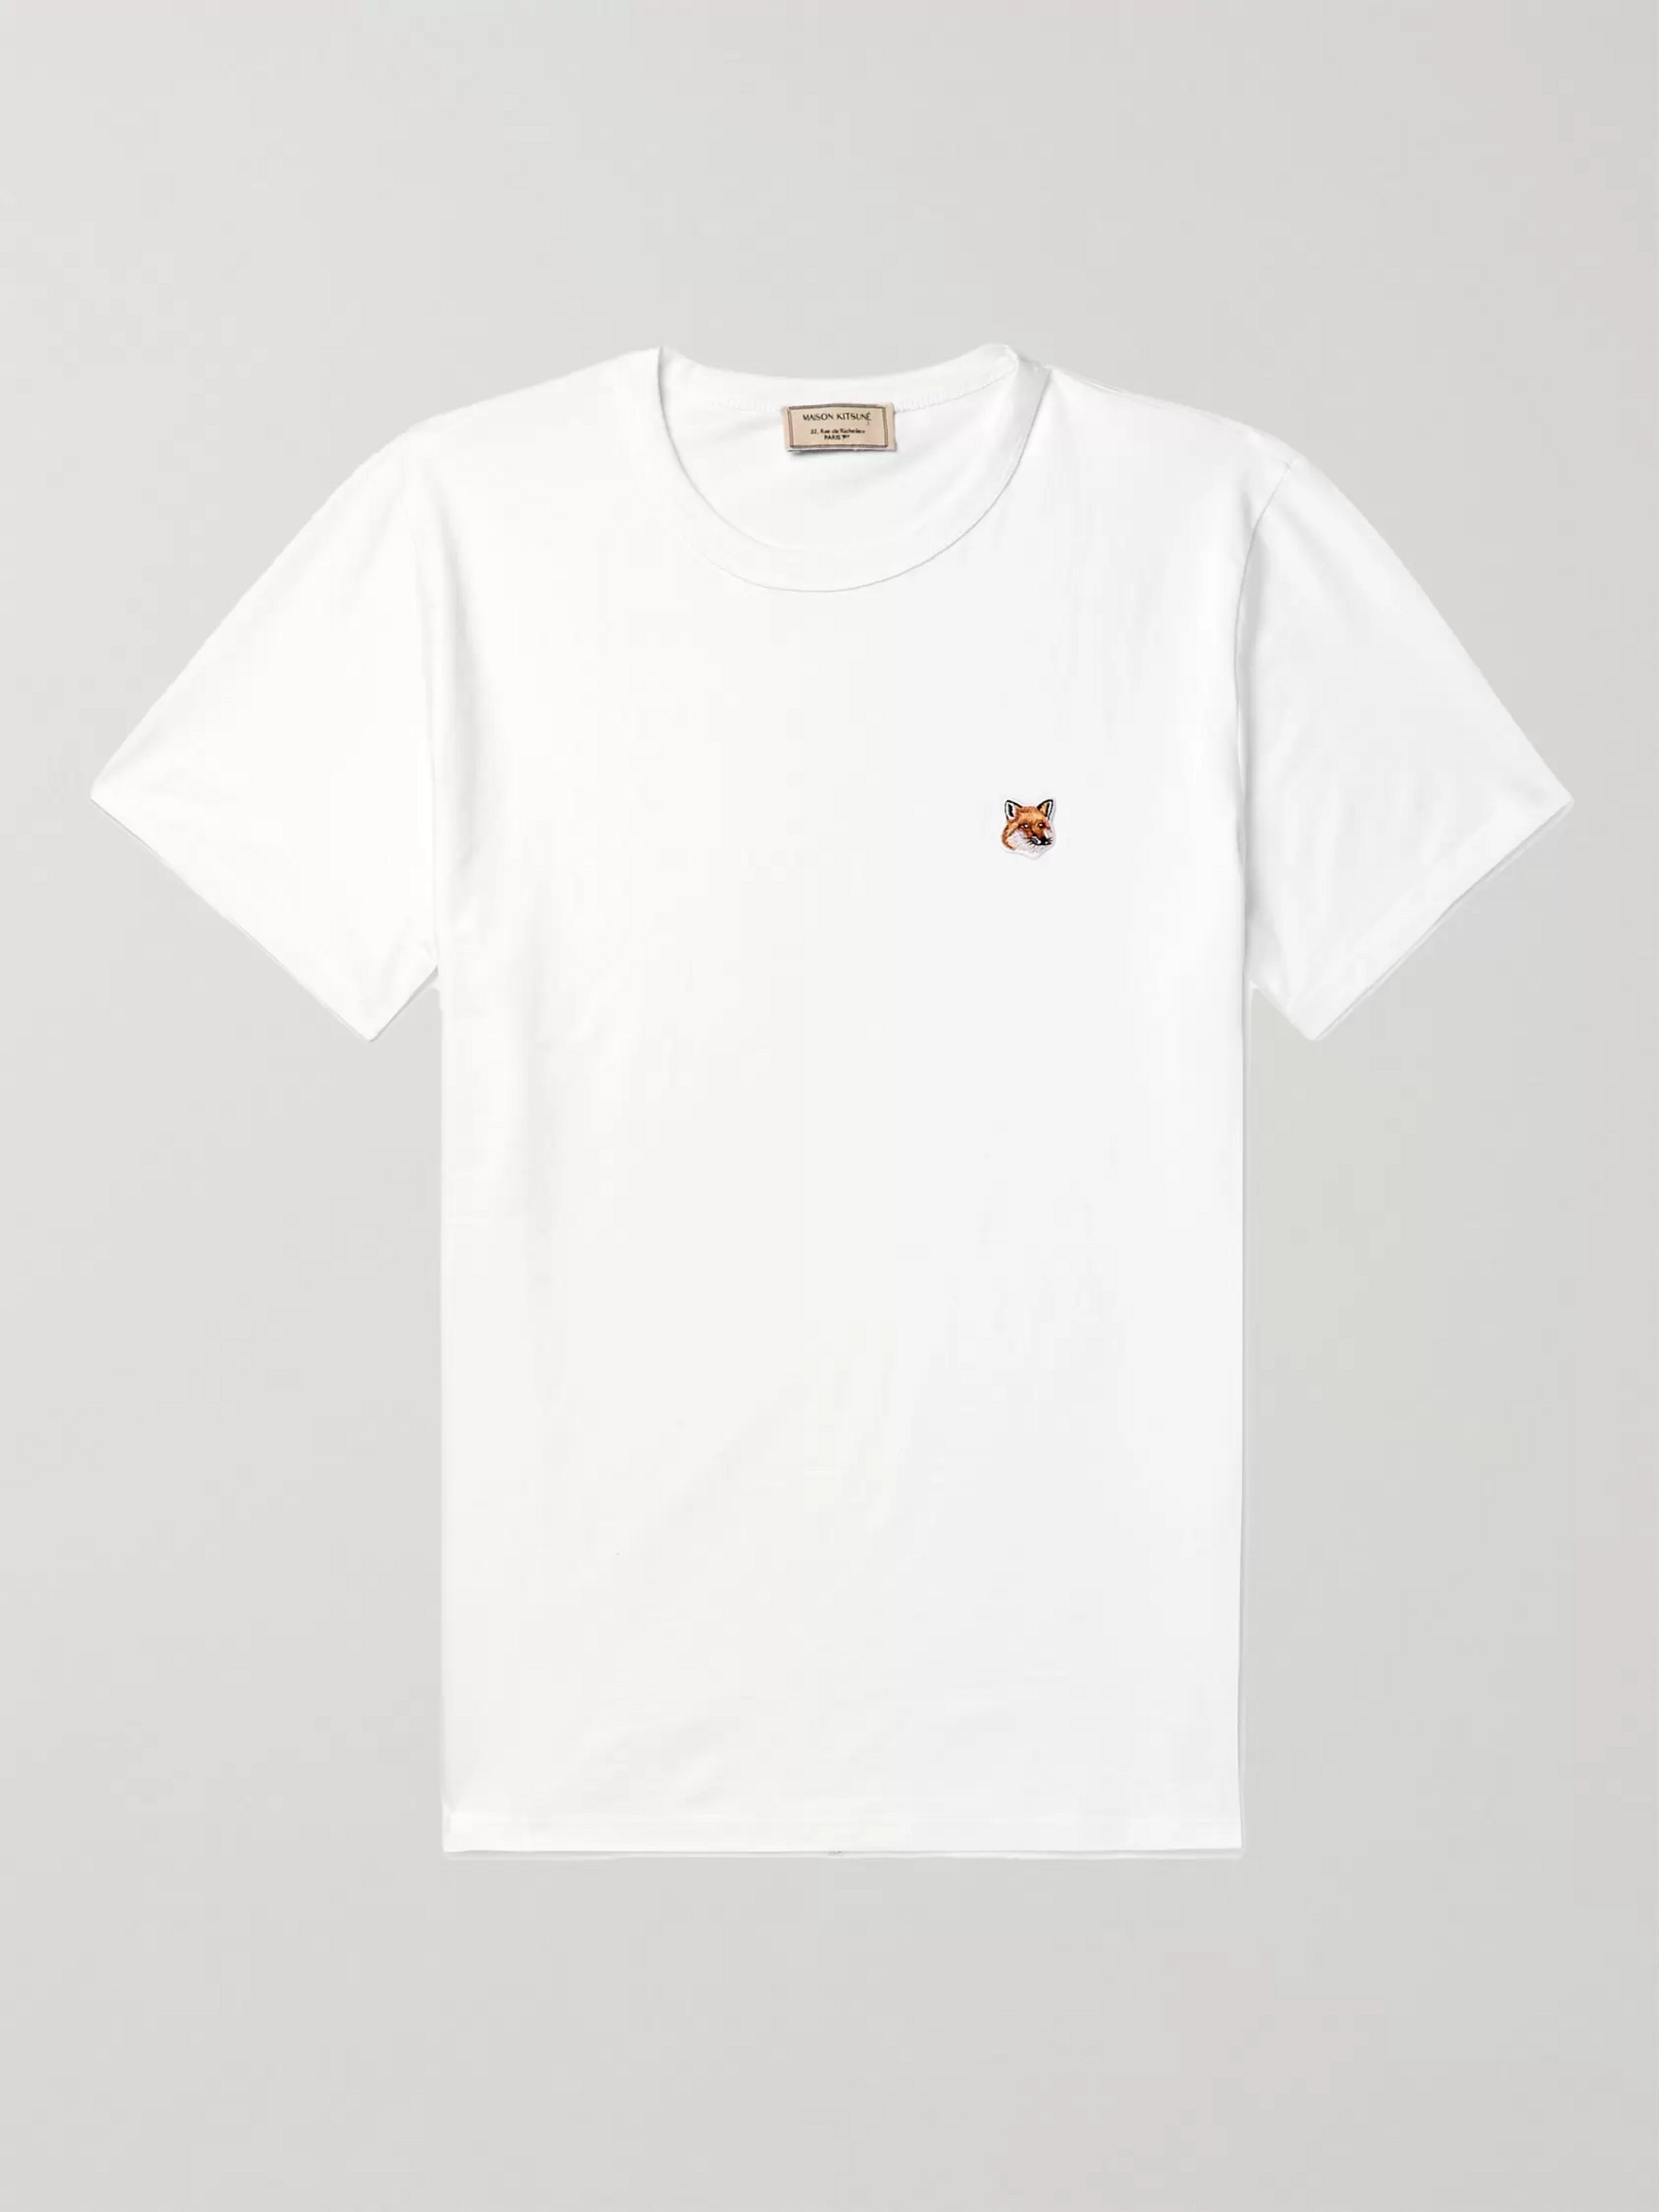 Maison Kitsuné Appliquéd Cotton-Jersey T-Shirt